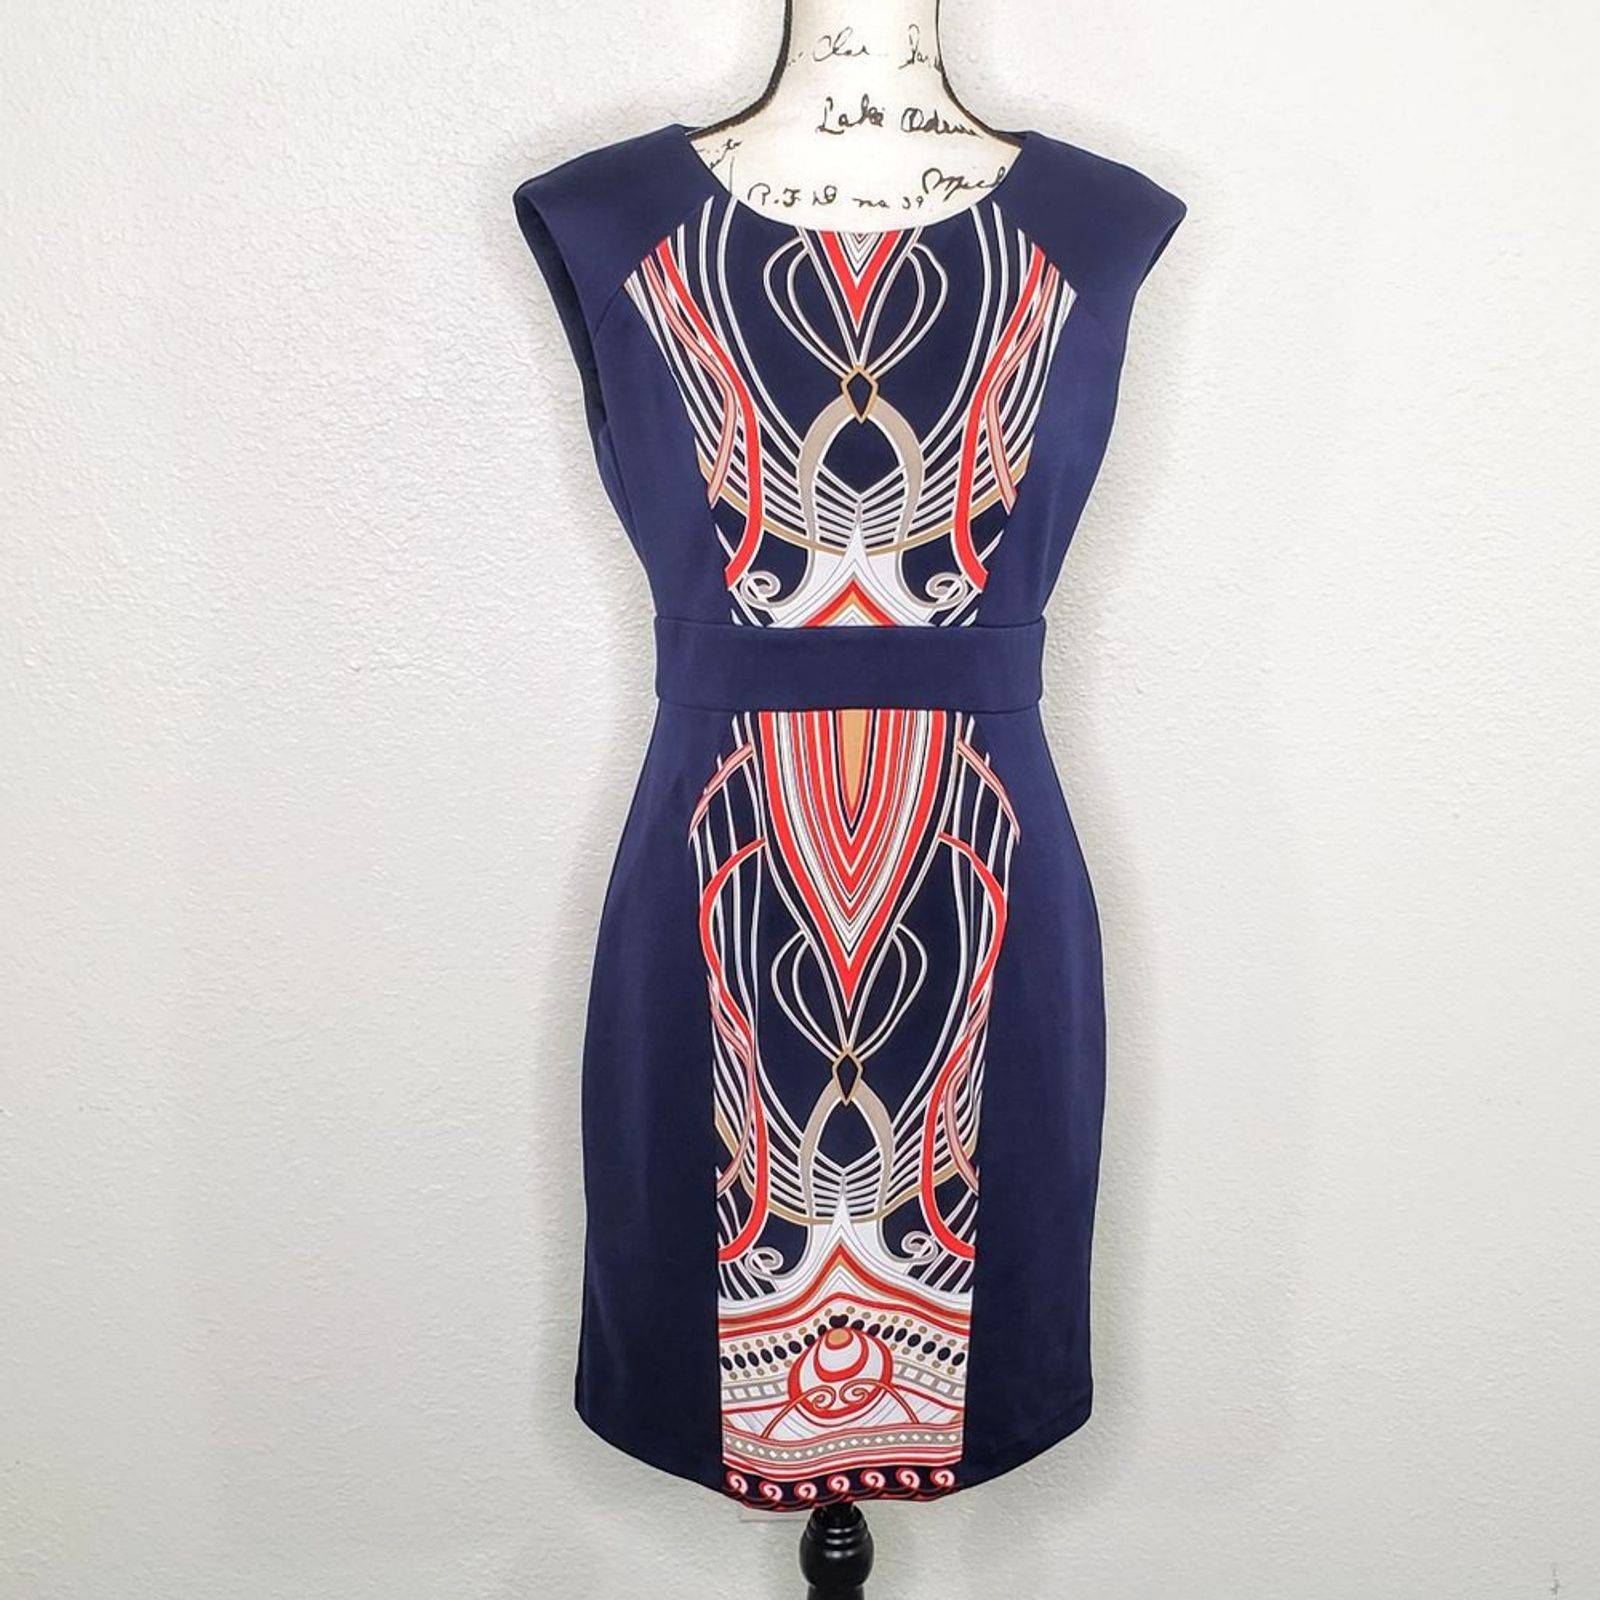 Studio One Navy Blue Sheath Dress Size 6